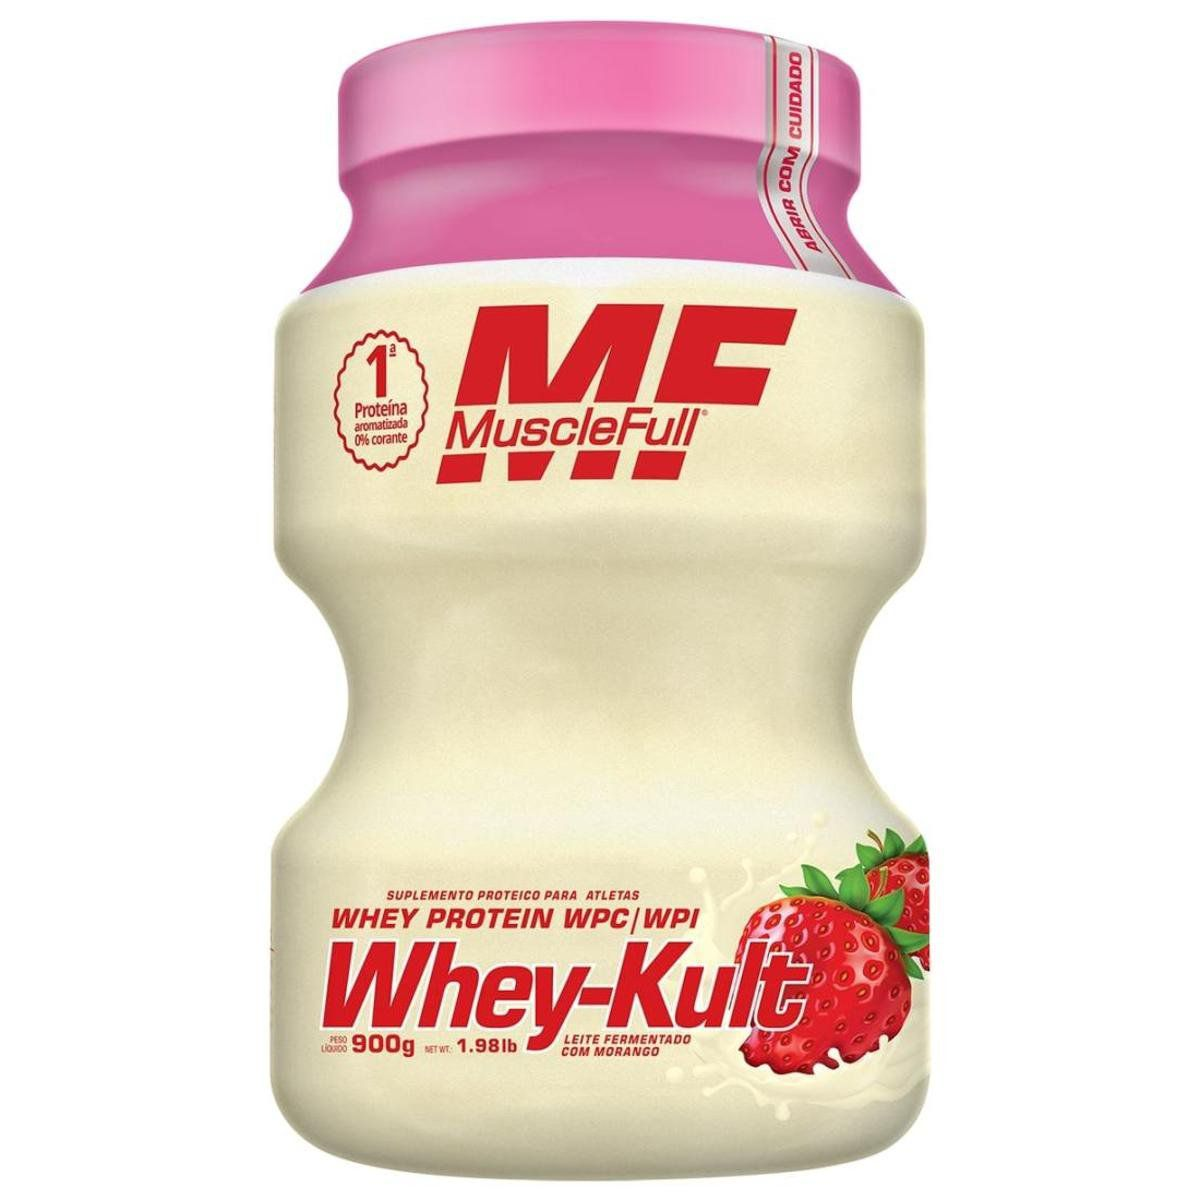 Whey-Kult - Whey Protein WPC / WPI   Muscle Full   900g